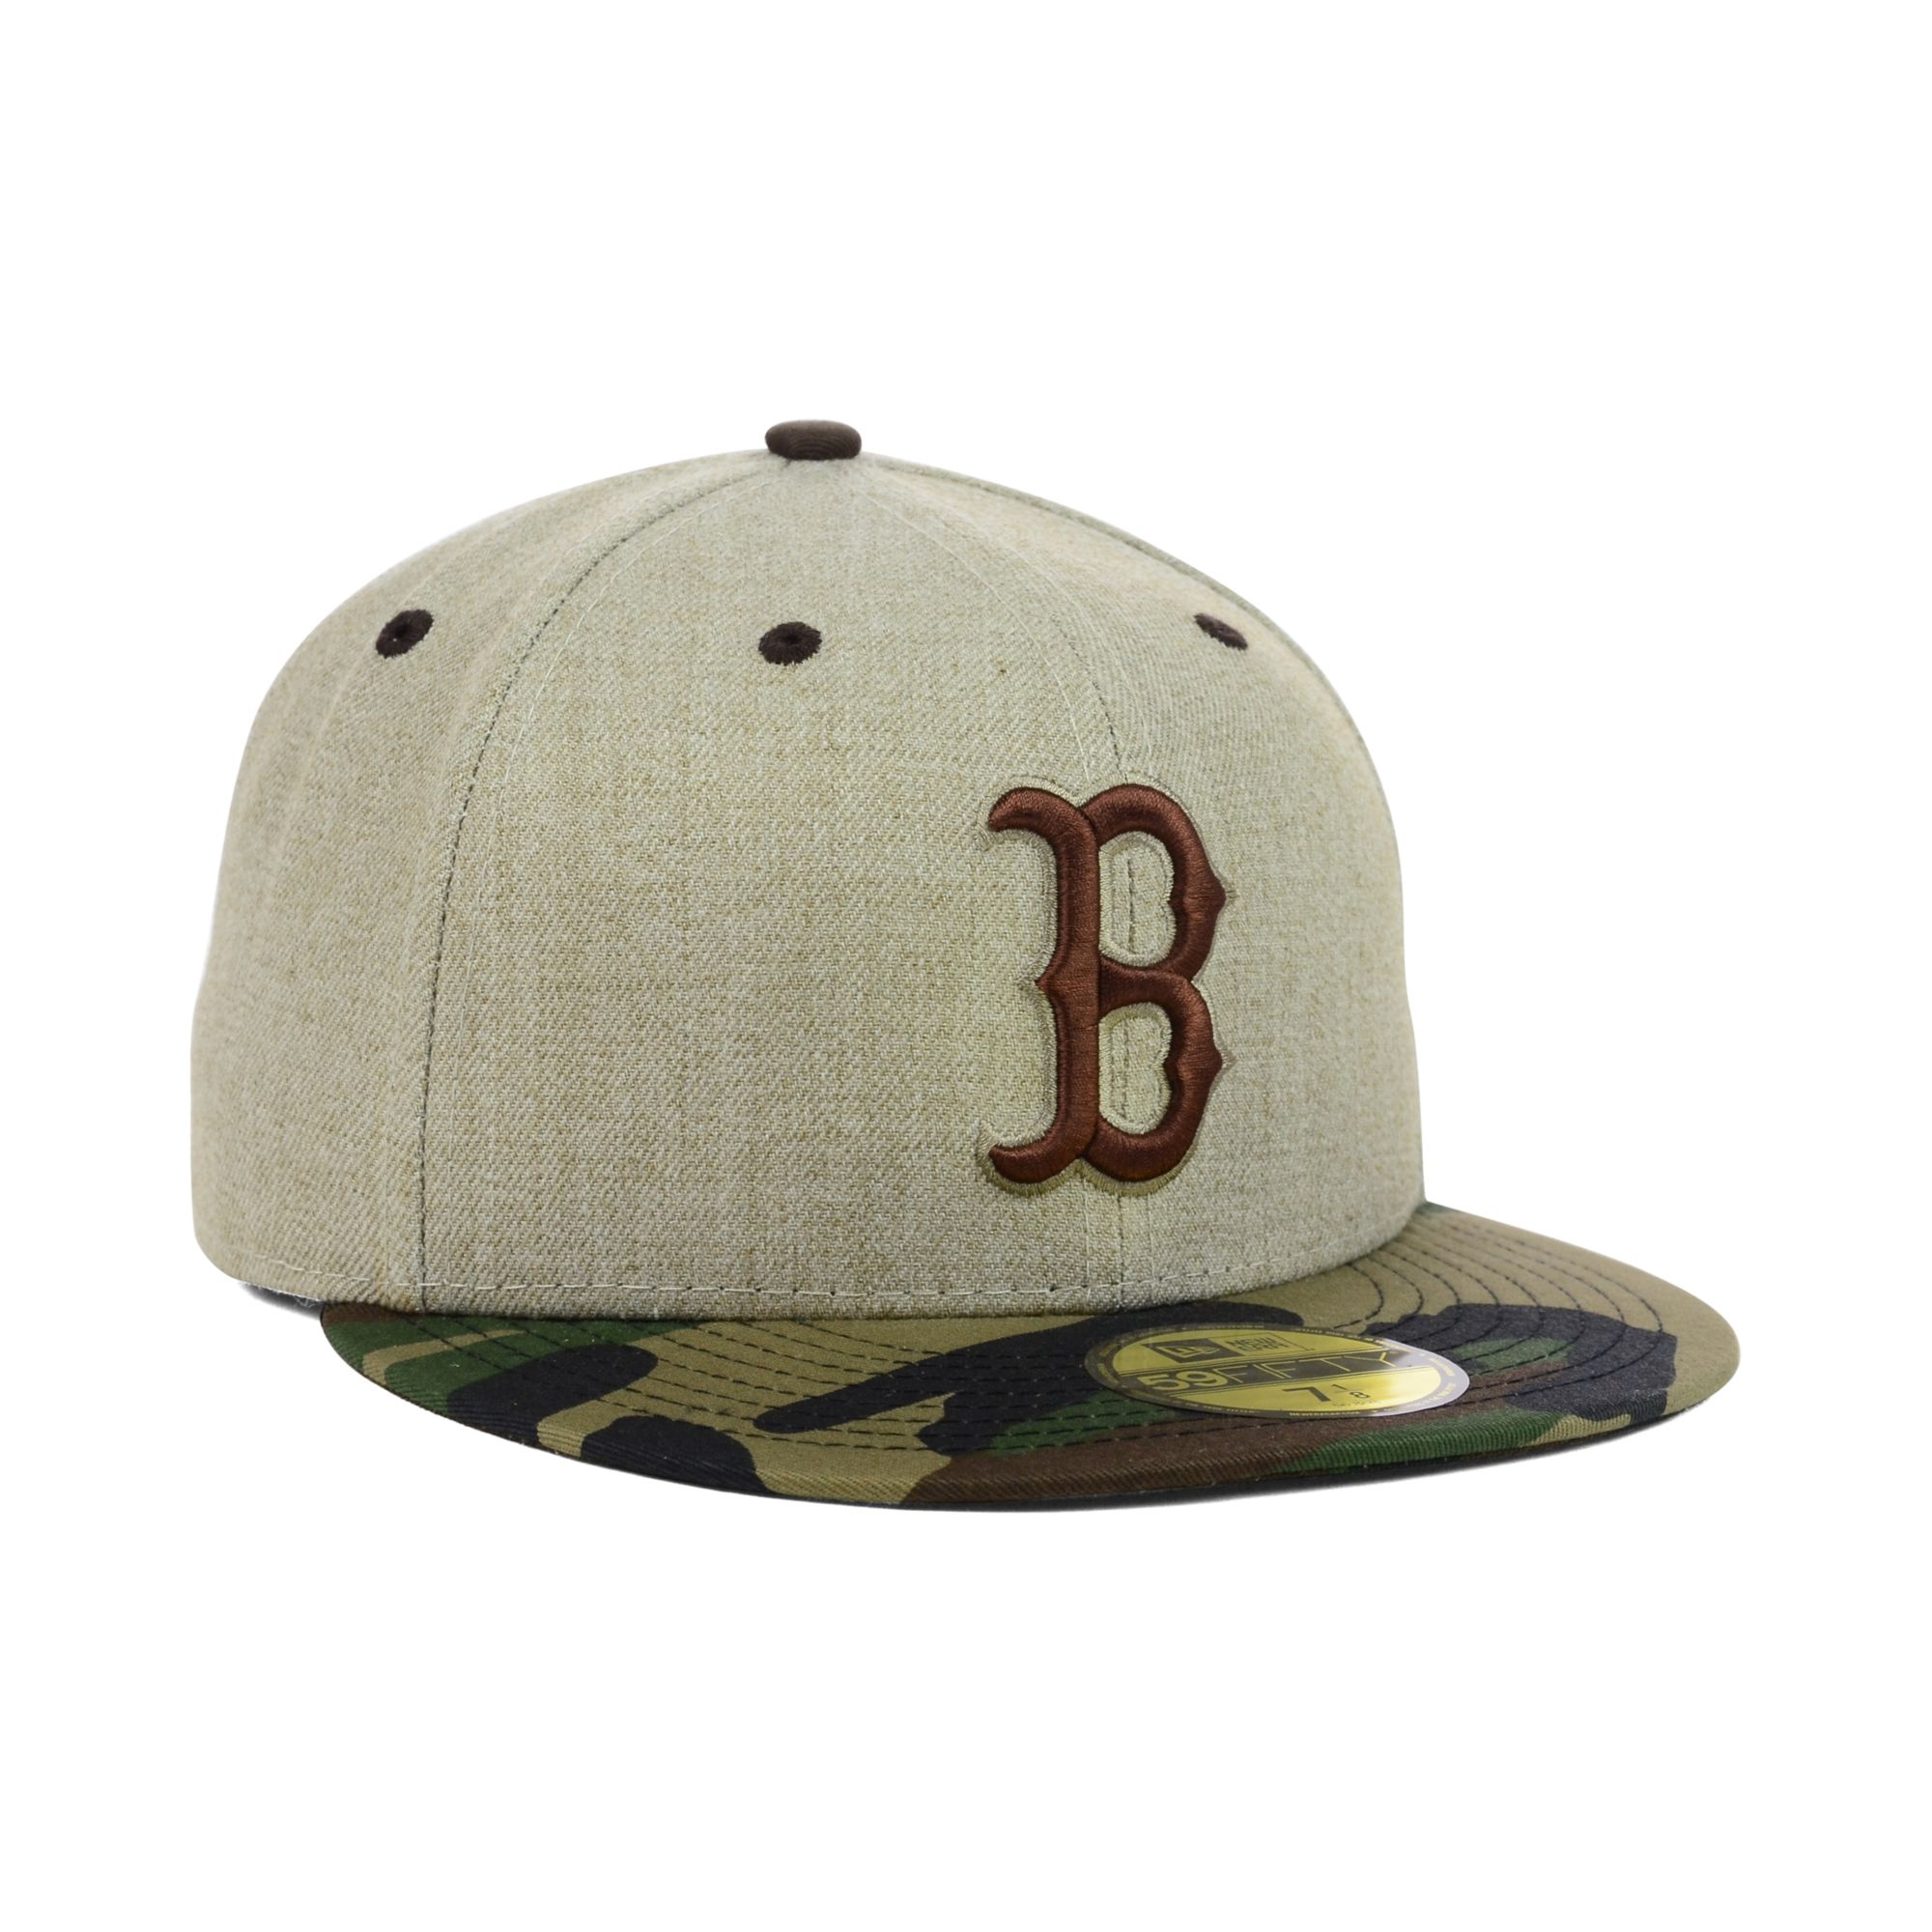 super popular 426a3 45f5e ... clearance lyst ktz boston red sox heather mashup 59fifty cap in natural  for men 97d1b ce7d2 new zealand gray mashup 59fifty new era mlb ...